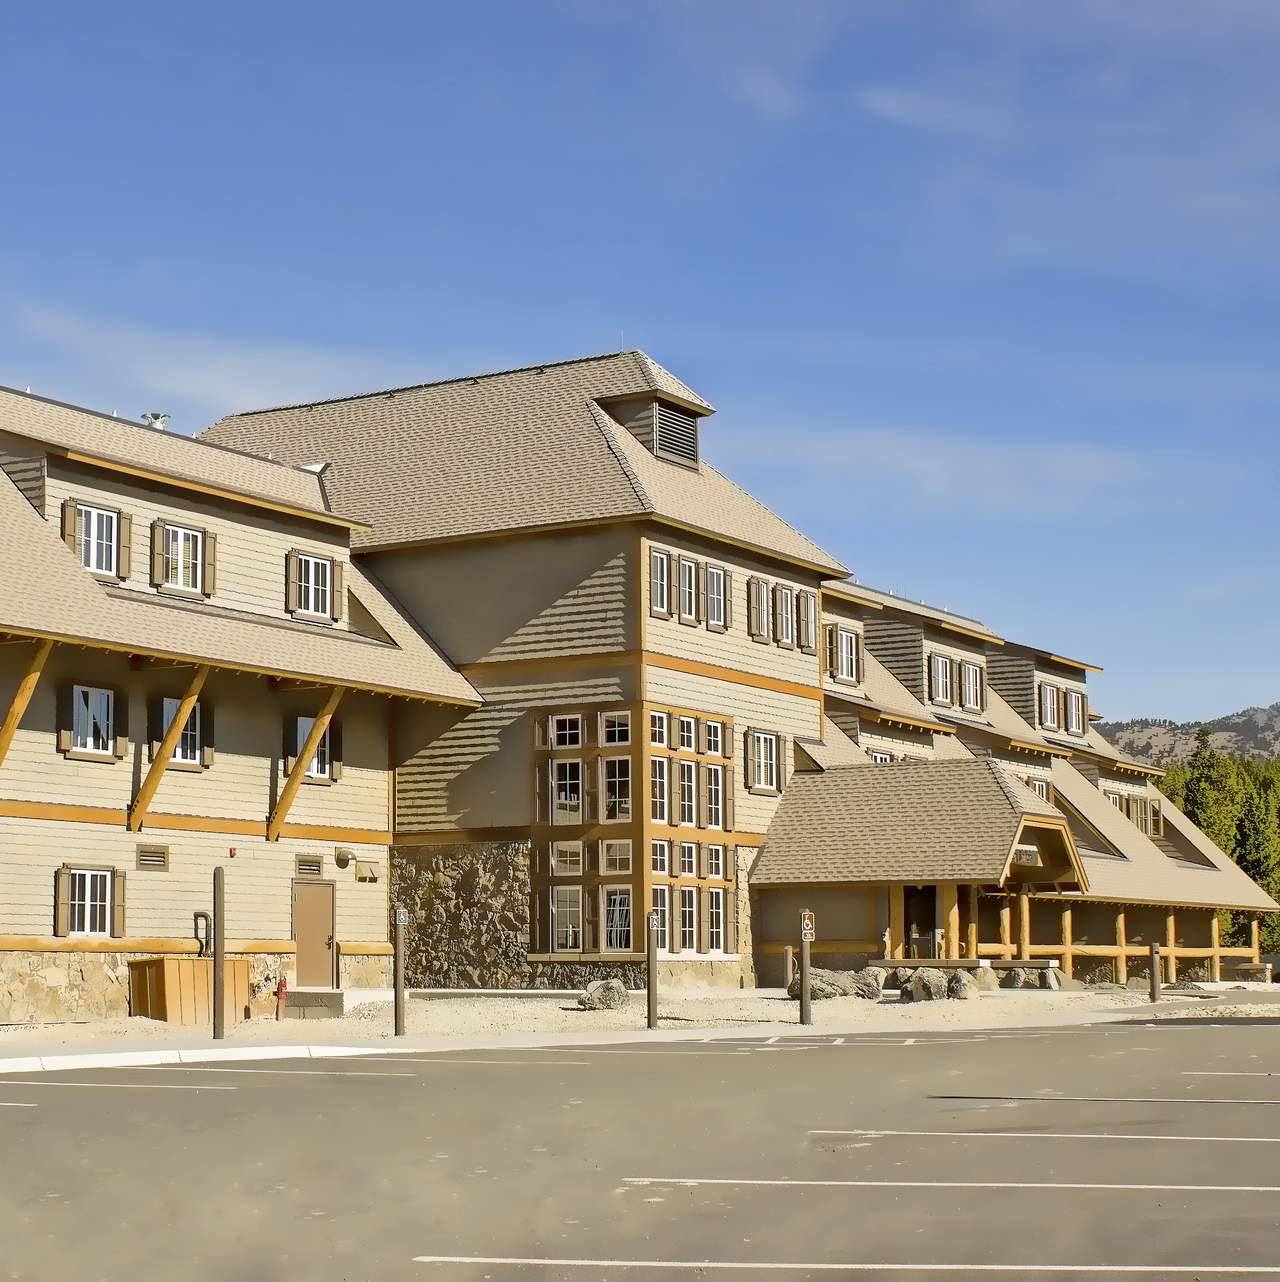 Hotel Wyoming Canyon Lodge and Cabins  CANUSA